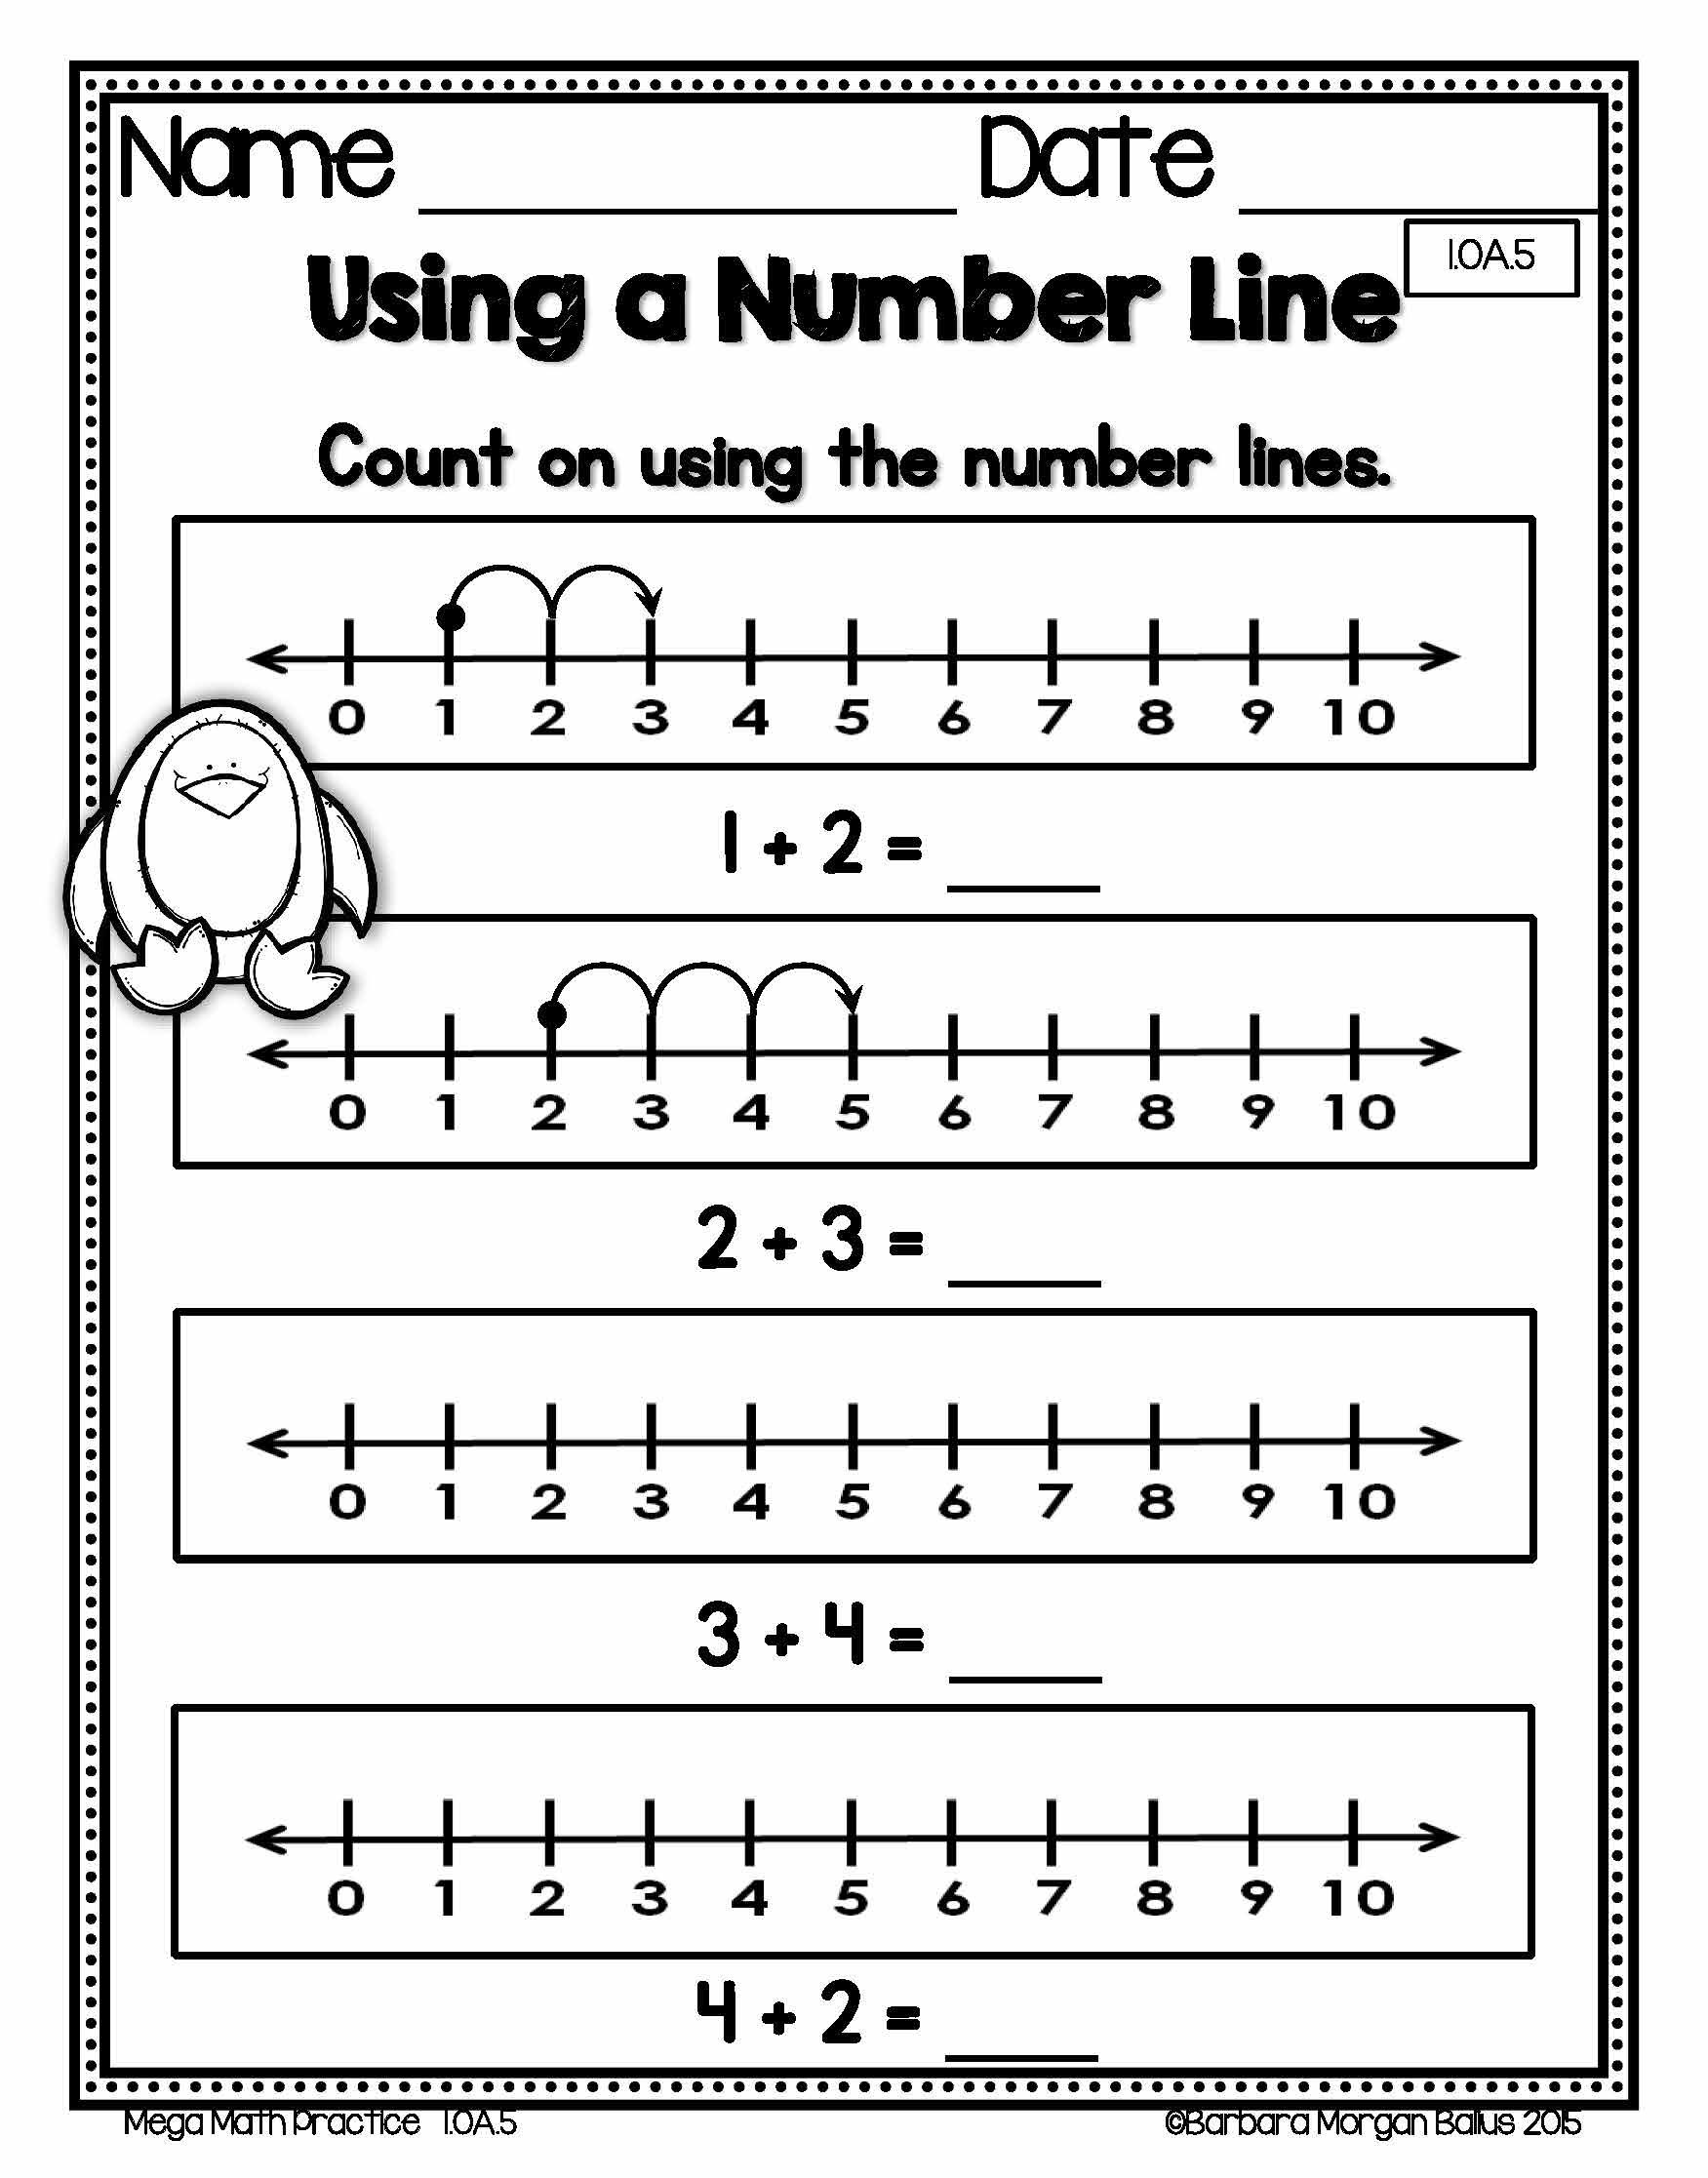 Number Line Worksheet 6th Grade